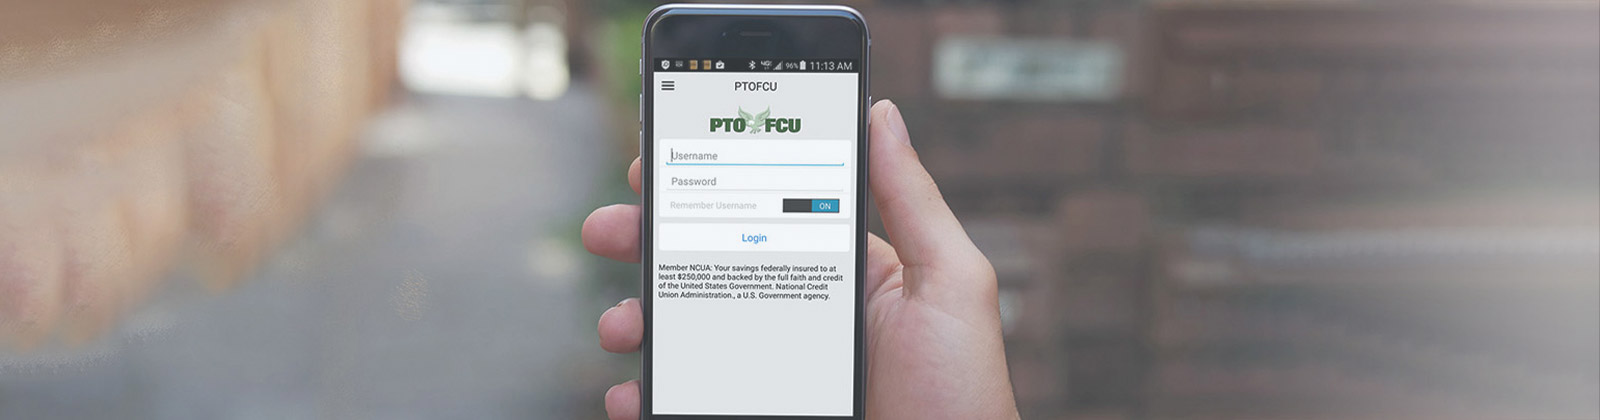 Mobile device with PTOFCU face